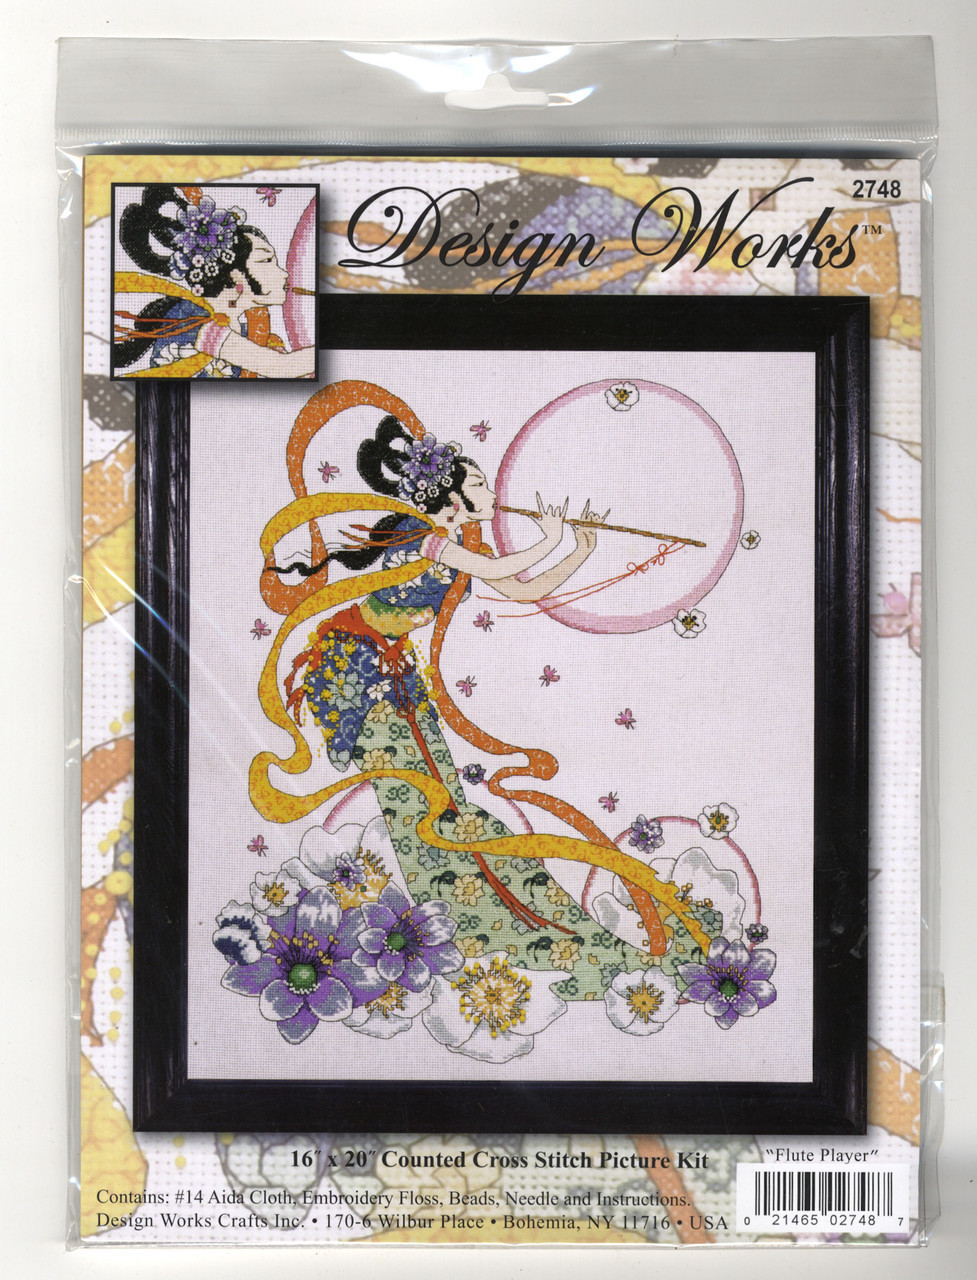 Design Works - Flute Player